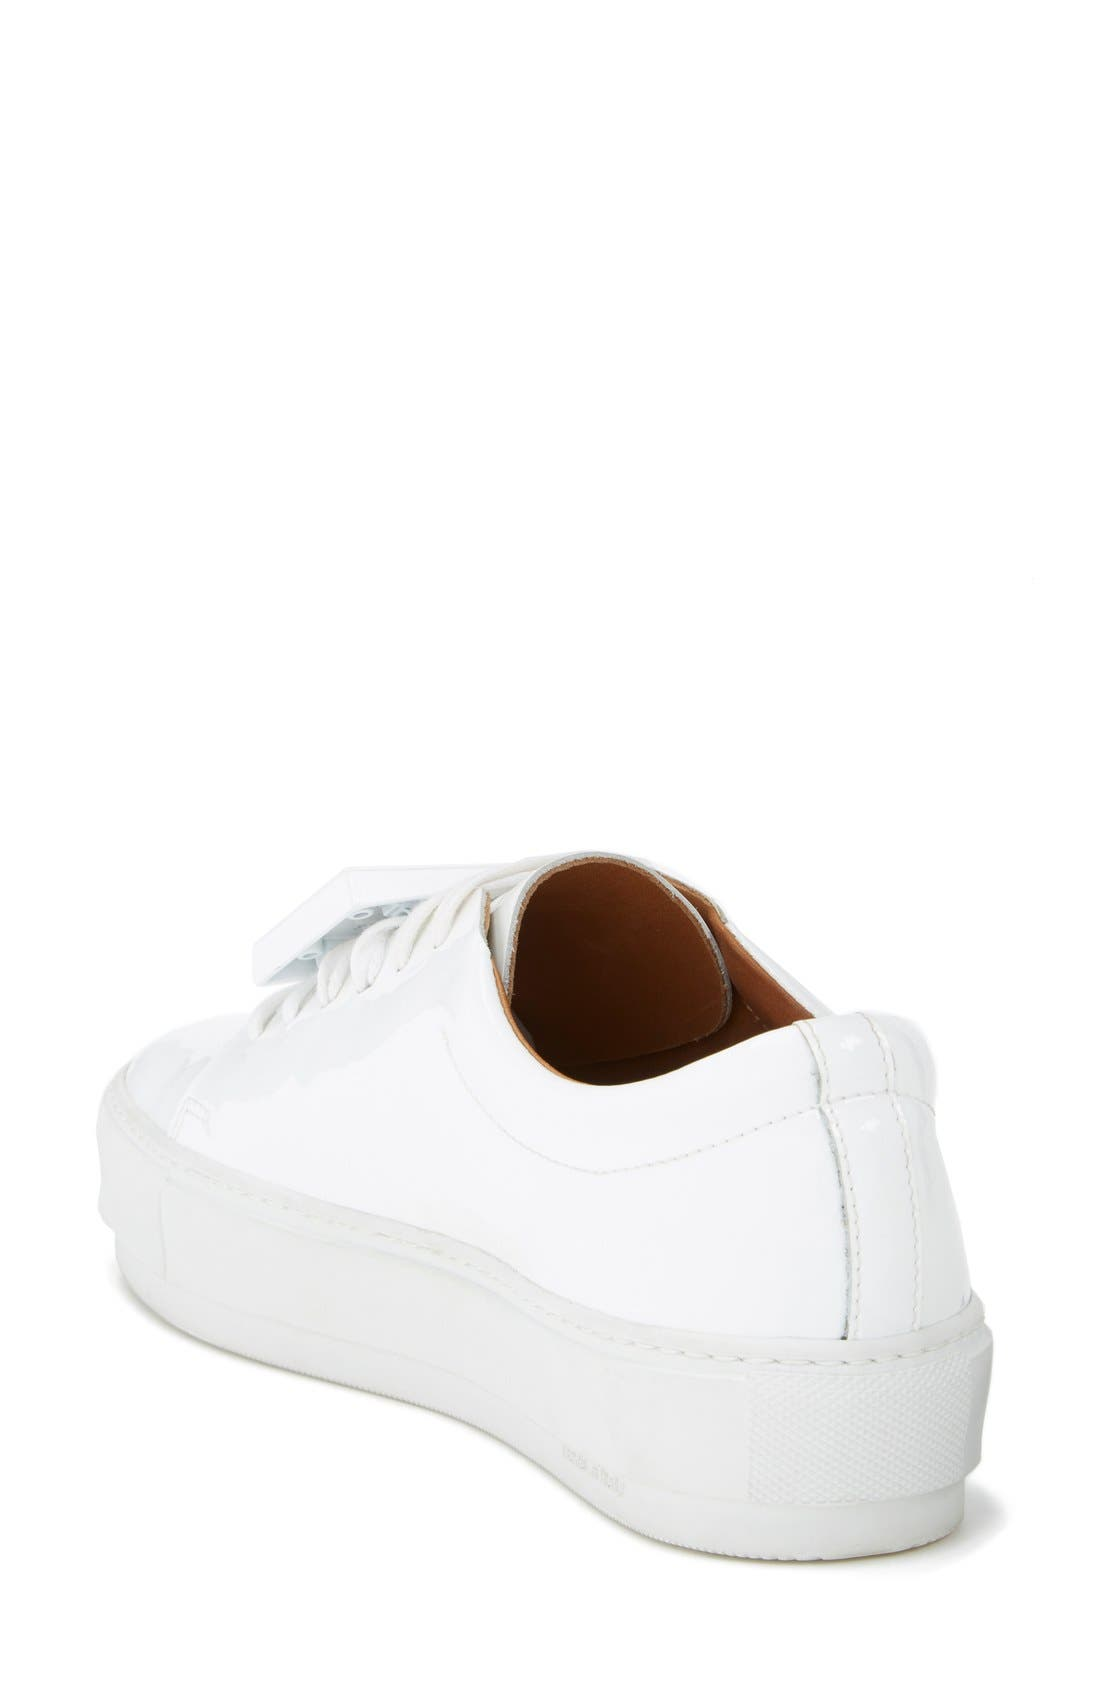 Adriana Leather Sneaker,                             Alternate thumbnail 2, color,                             100